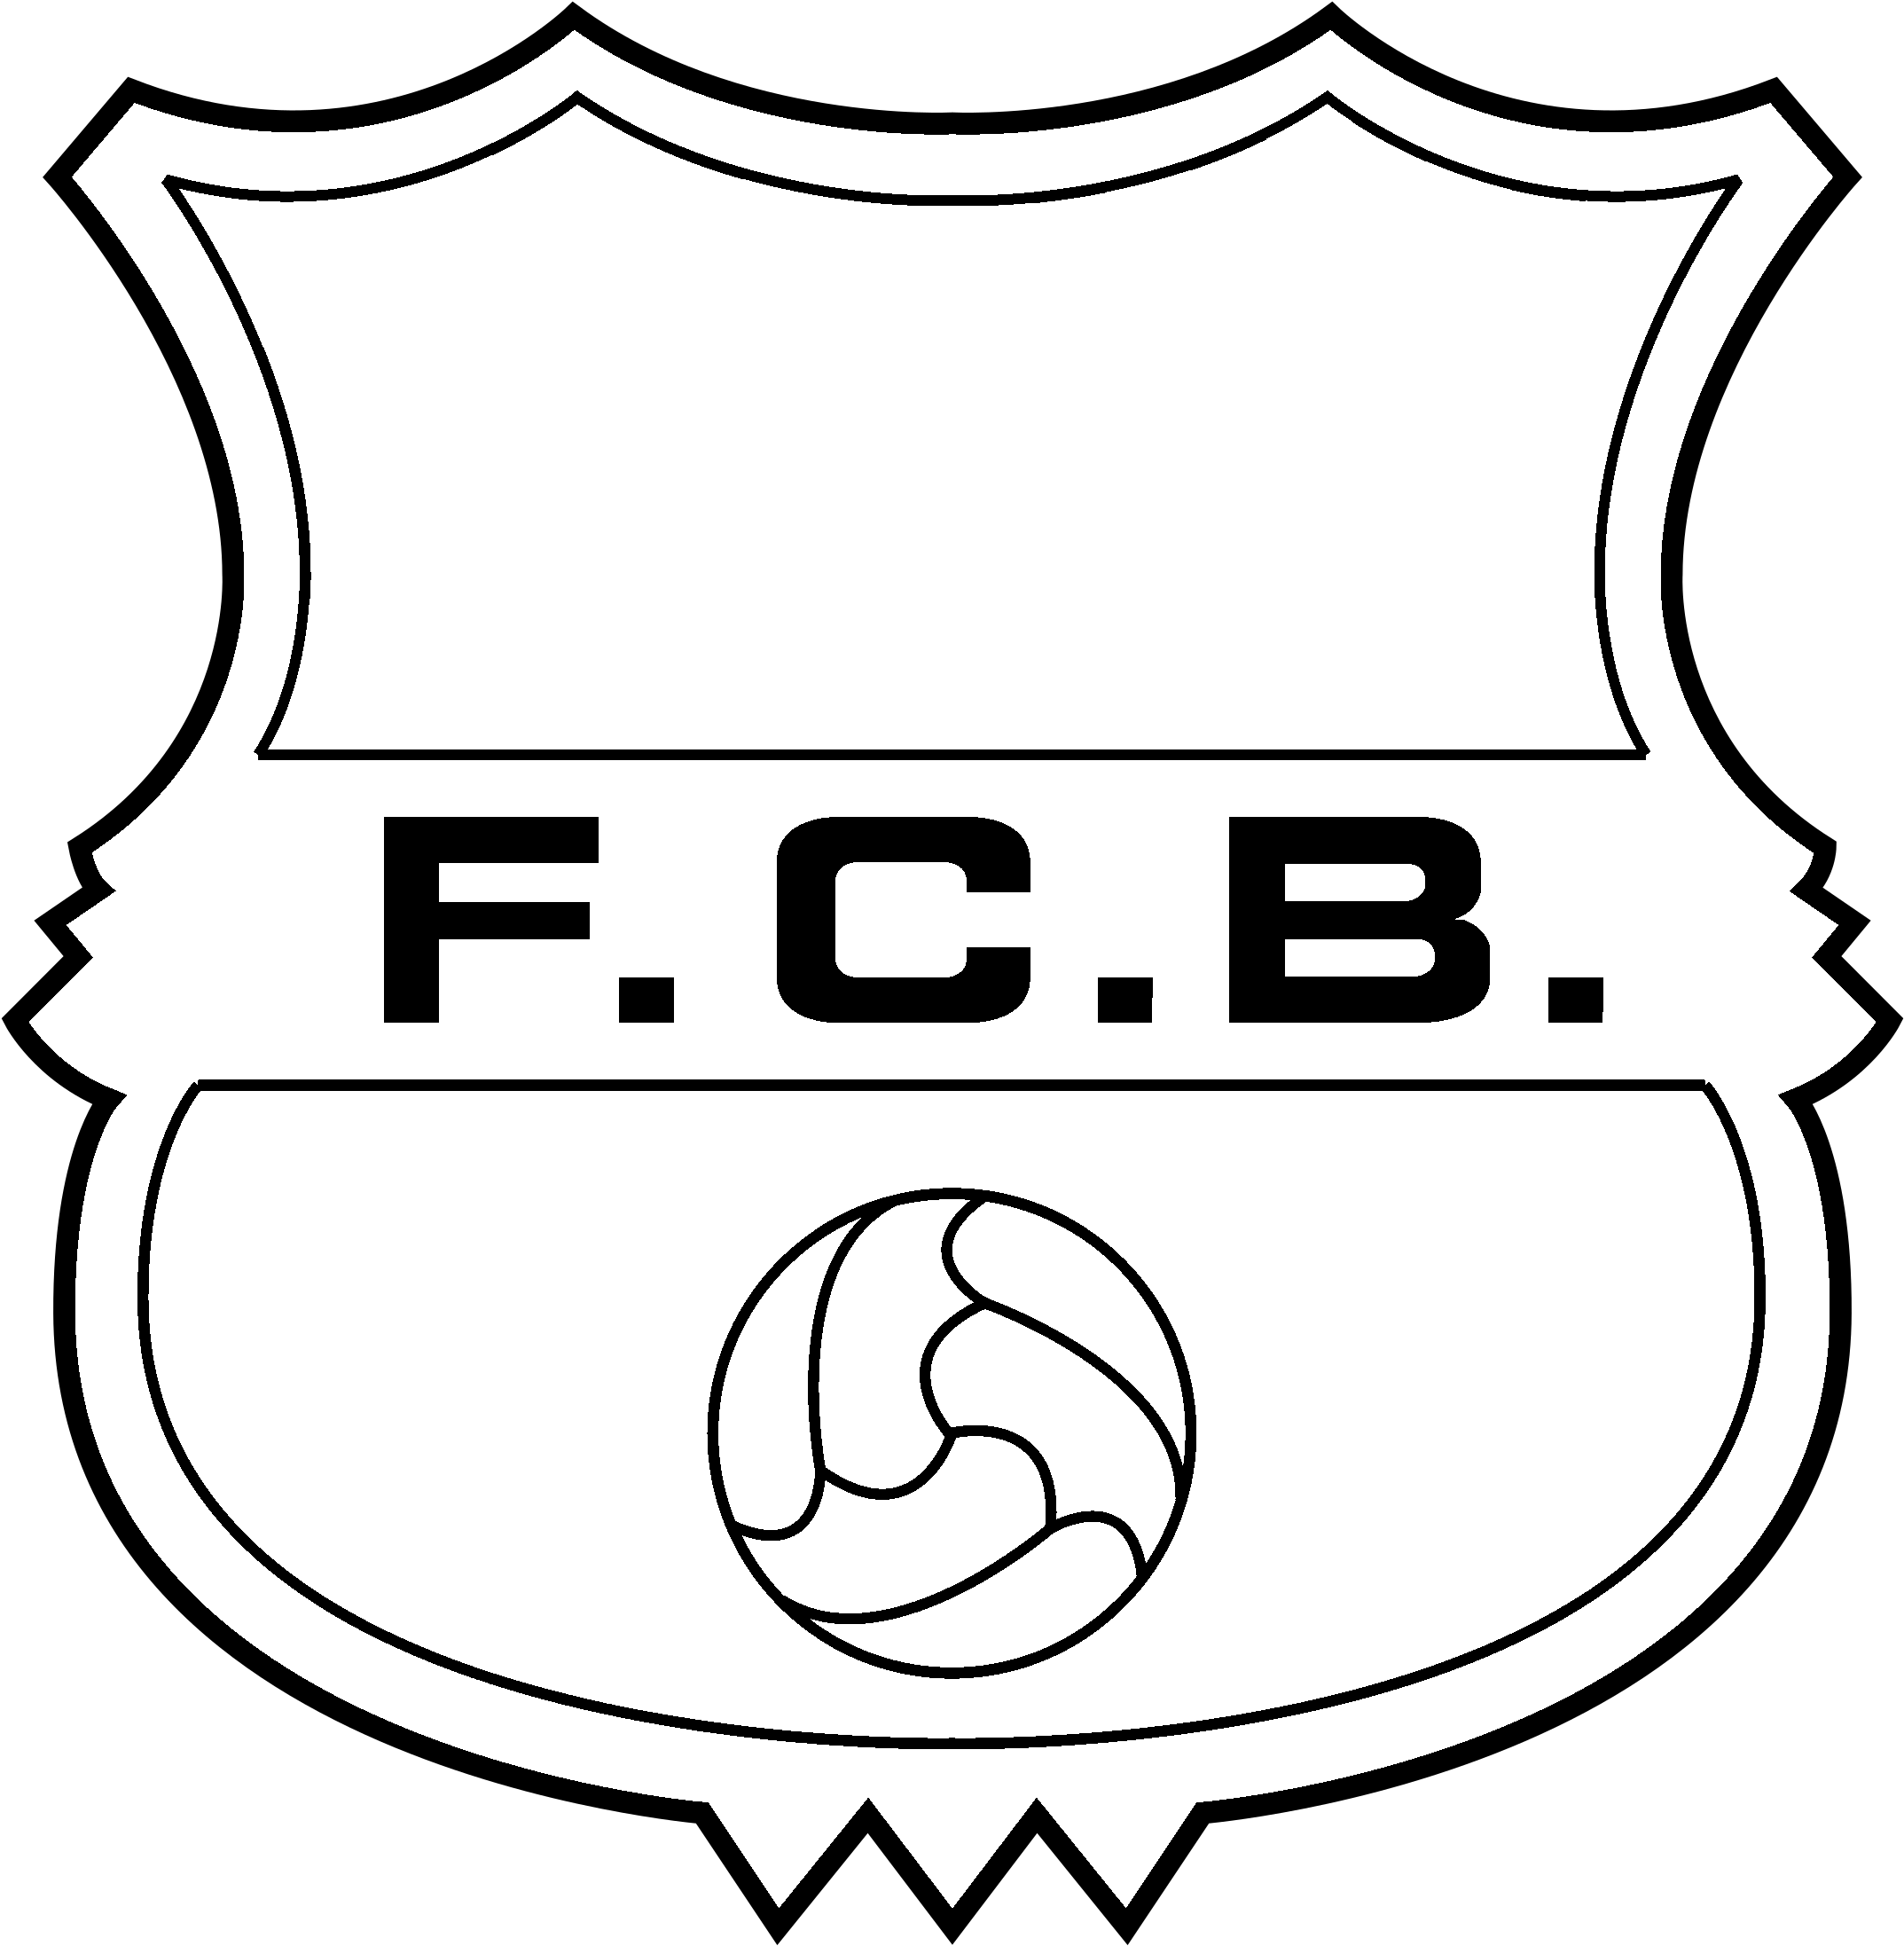 download barcelona logo black and white barcelona fc logo png png image with no background pngkey com barcelona fc logo png png image with no